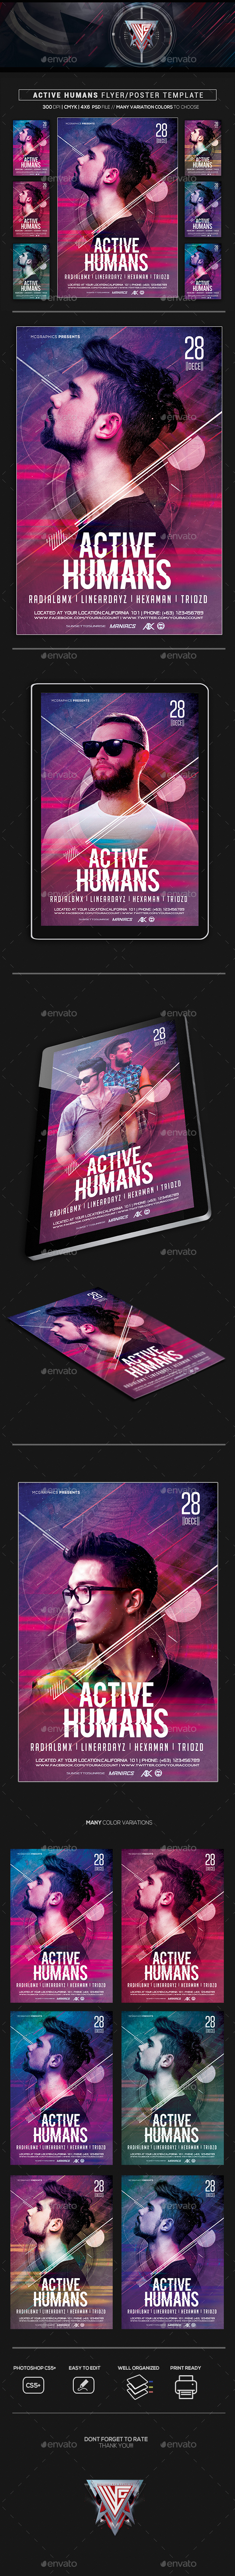 Active Humans Flyer/Poster Template - Flyers Print Templates